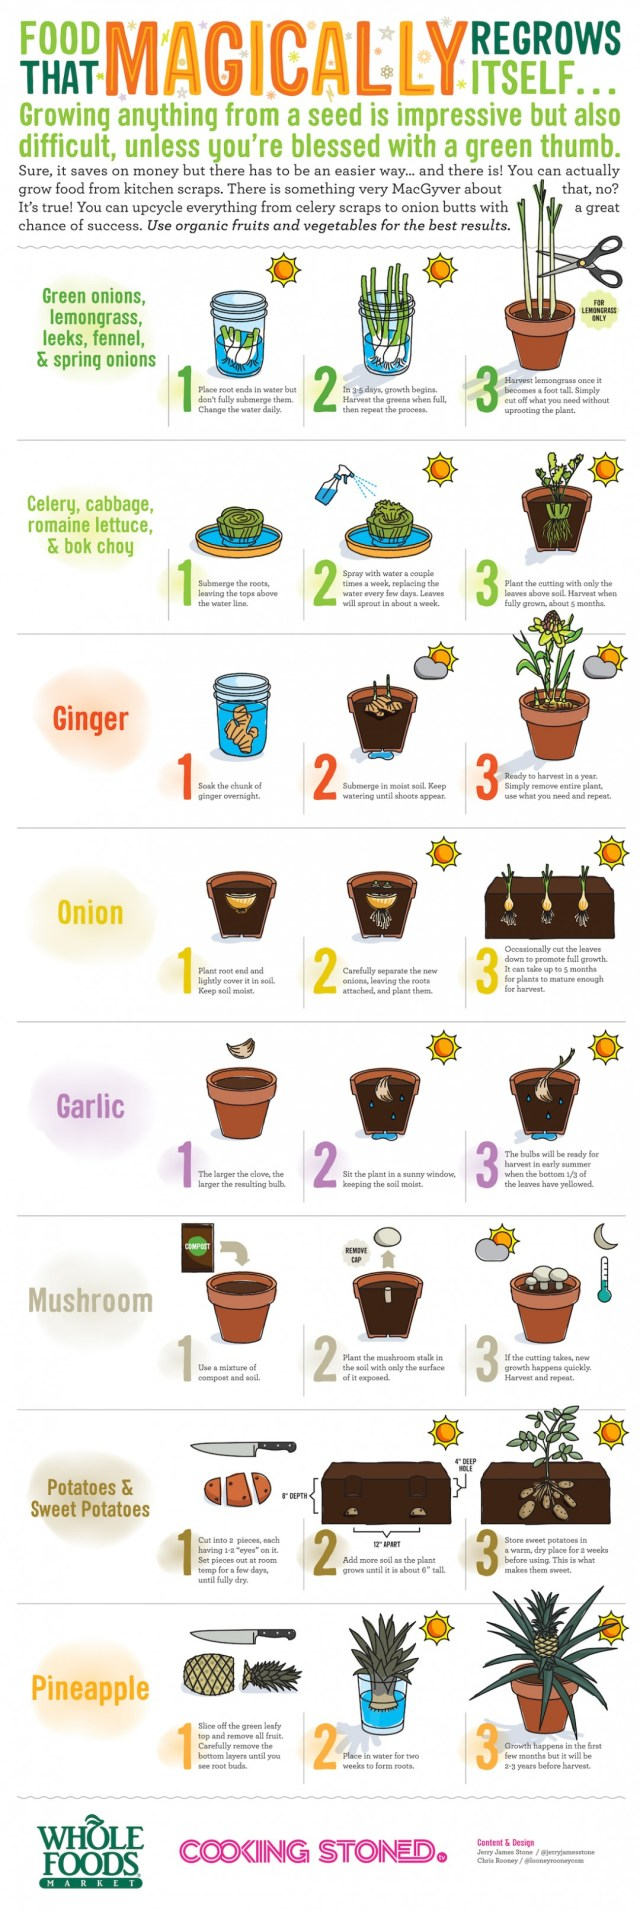 Cool Life Hack: Food That Regrows Itself